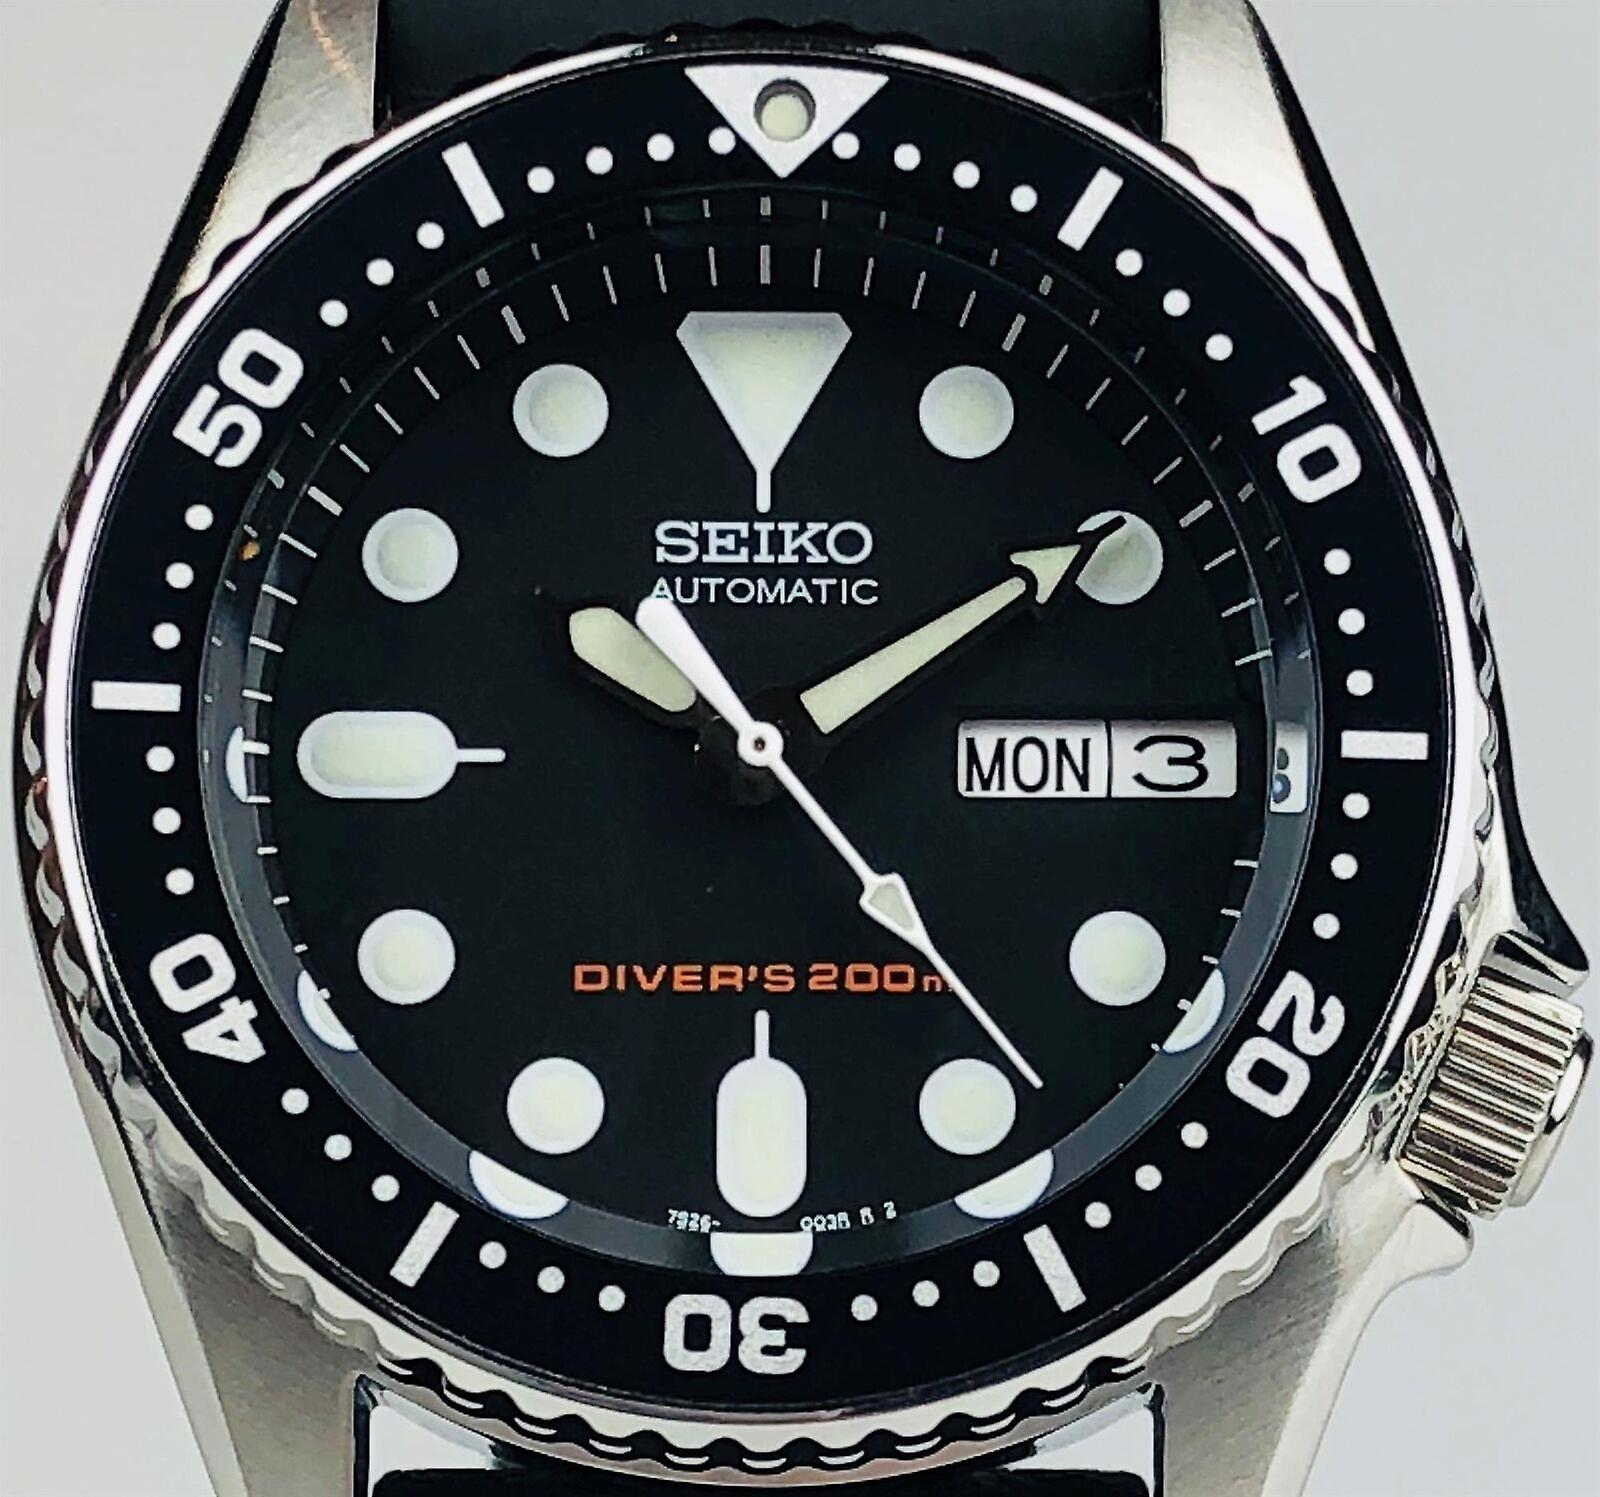 Seiko Diver's 200m Automatic 42mm Stainless Steel Case Black Rubber Strap Men's Watch SKX013K1